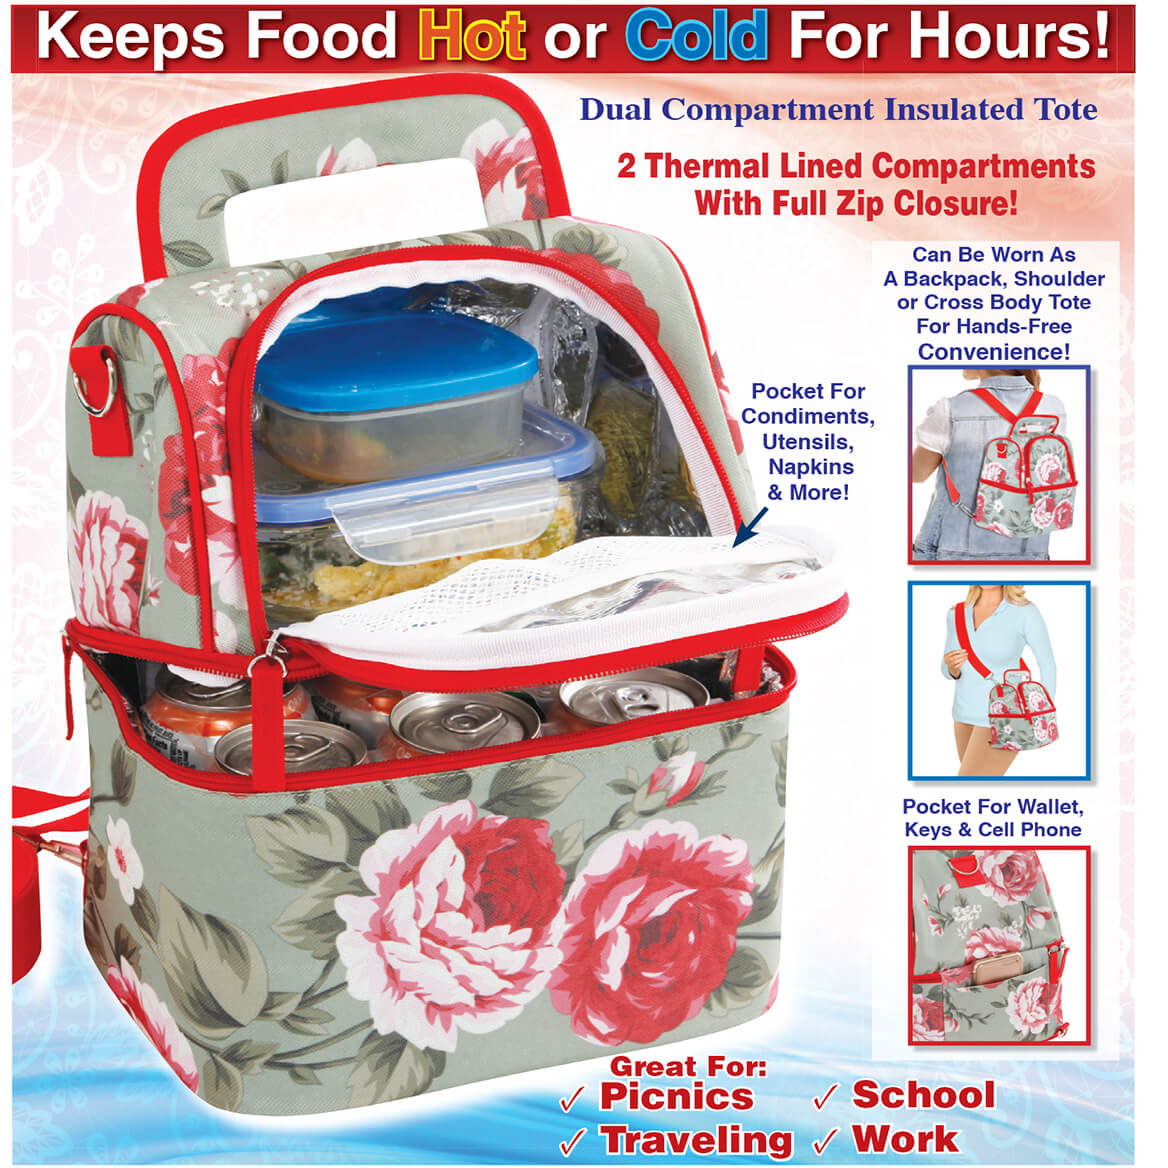 Dual Compartment Insulated Tote-369770